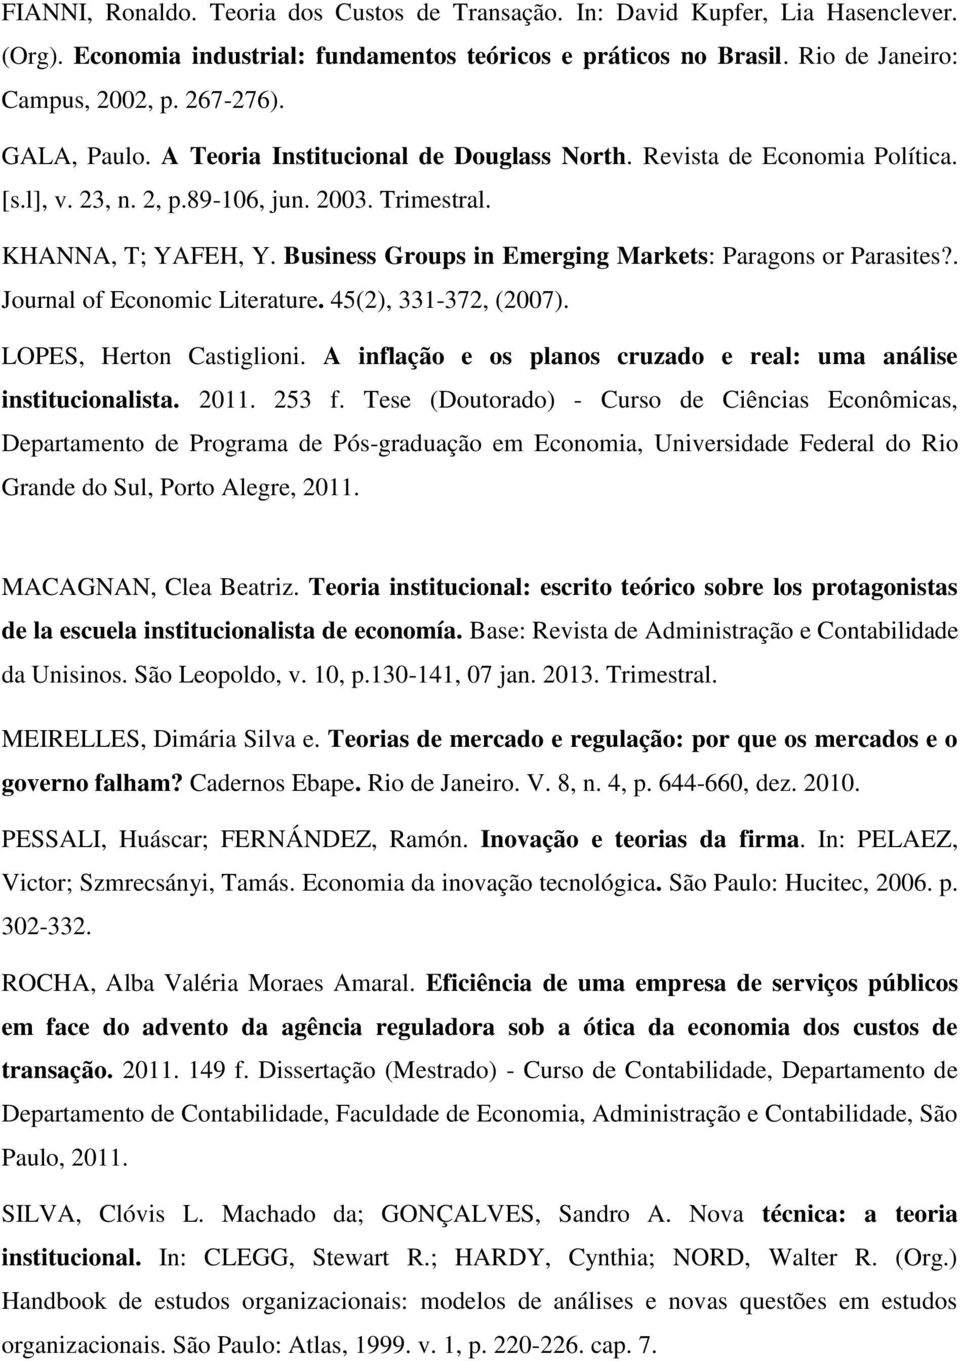 Business Groups in Emerging Markets: Paragons or Parasites?. Journal of Economic Literature. 45(2), 331-372, (2007). LOPES, Herton Castiglioni.